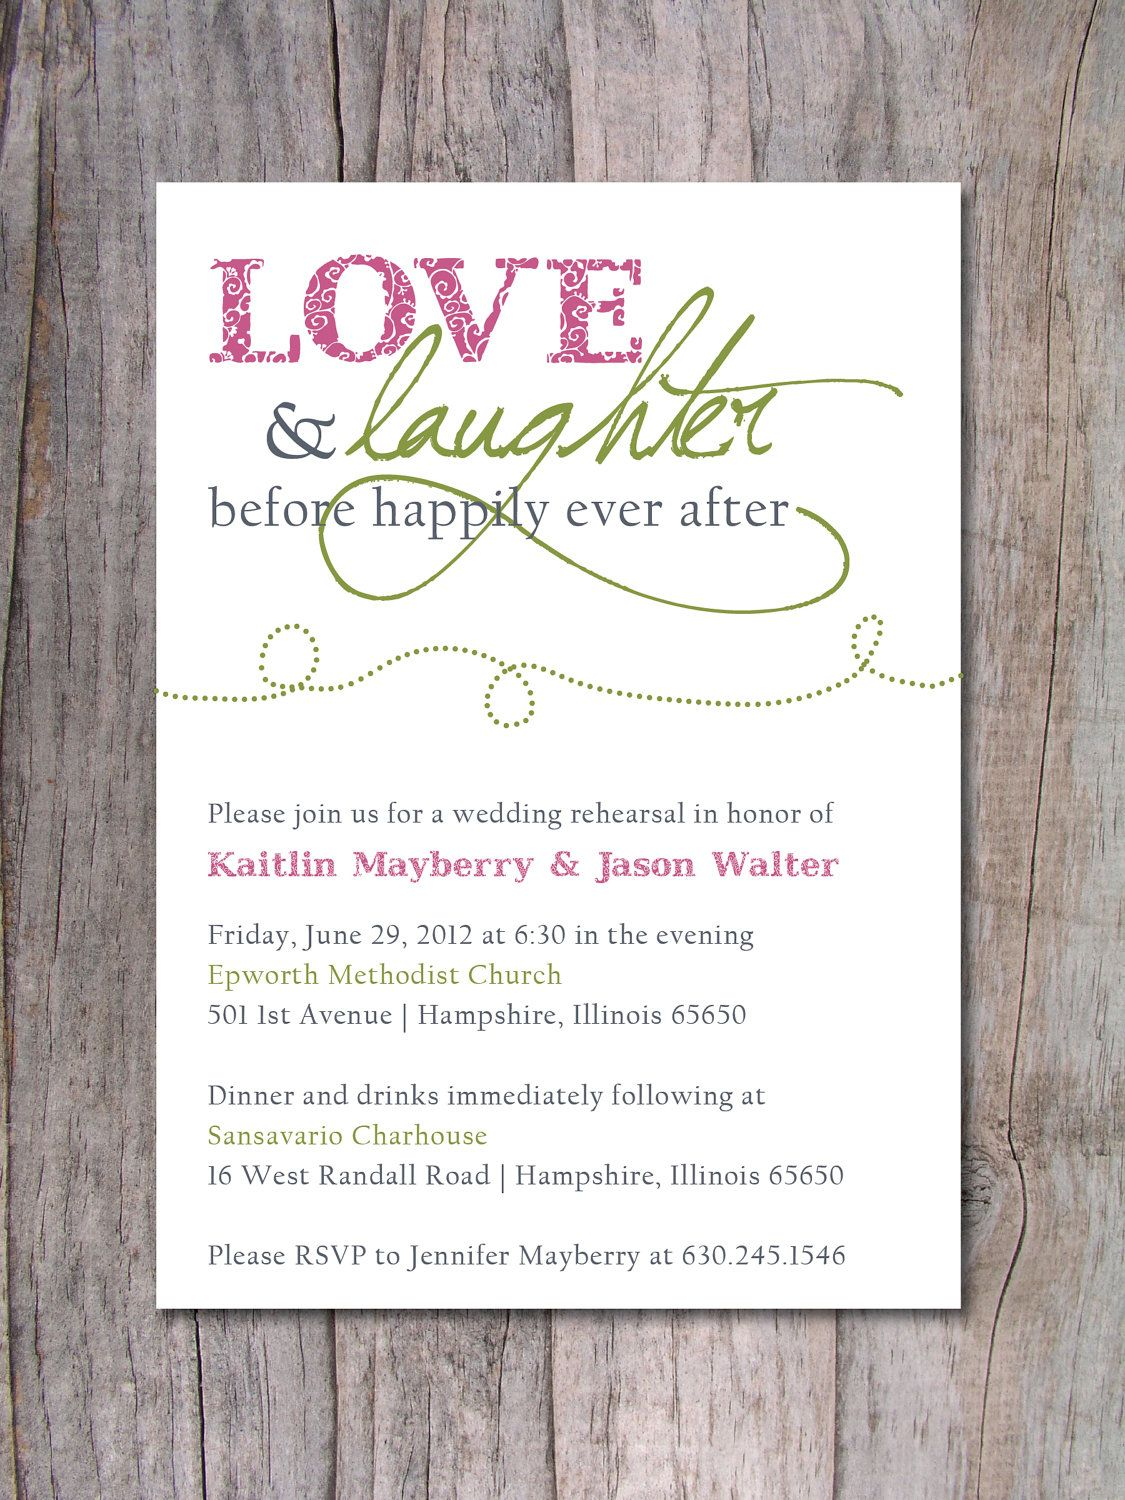 Rehearsal Dinner Invitation Happily Ever After With Images Wedding Invitation Wording Pre Wedding Party Rehearsal Dinner Invitations